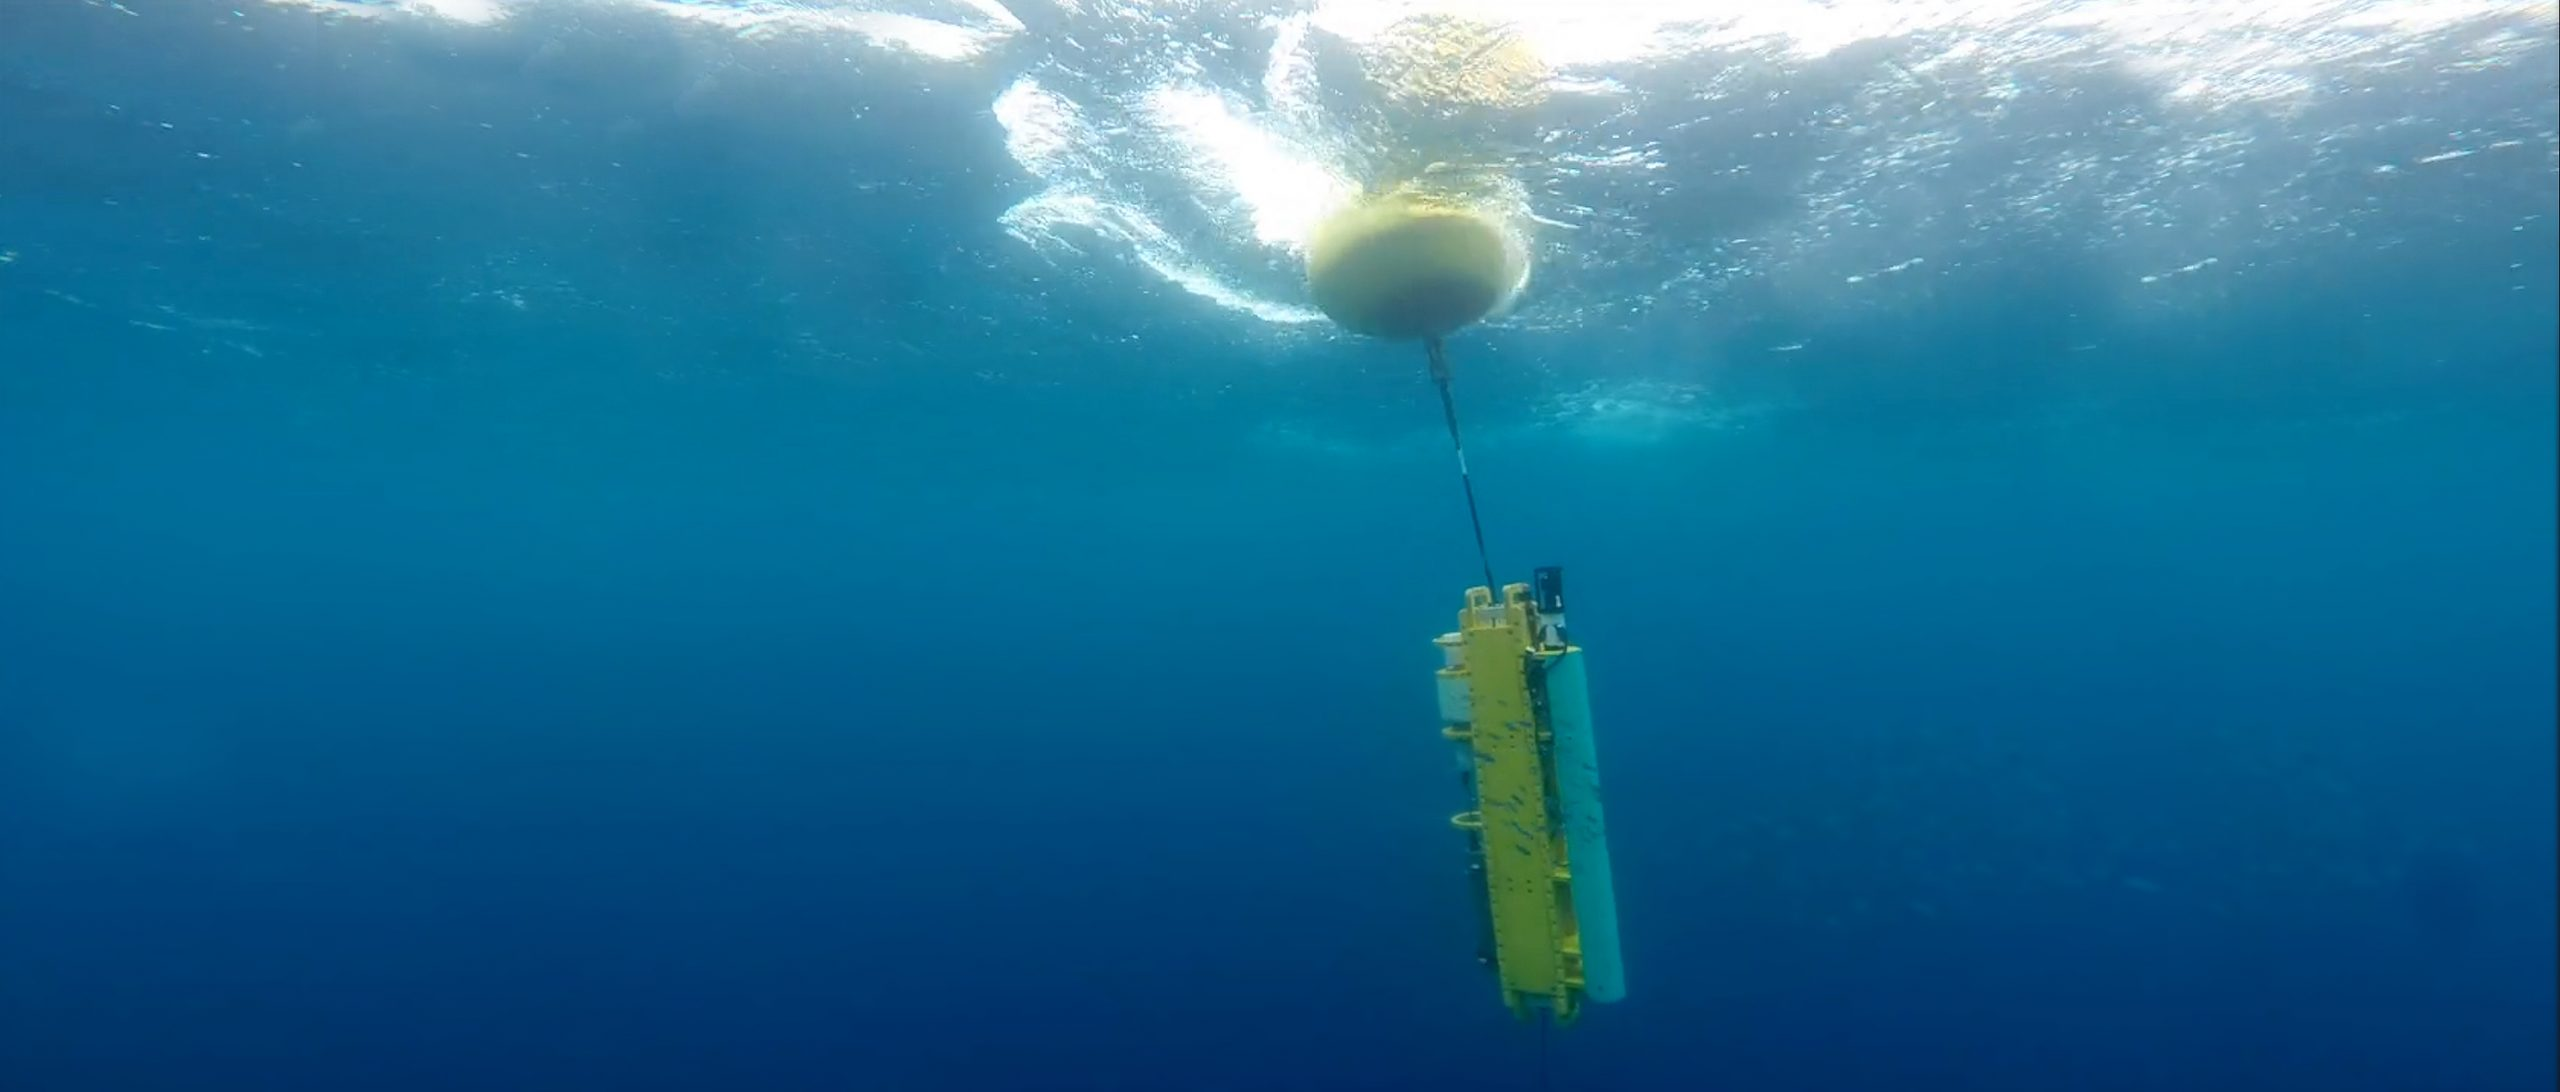 Yellow instrument dangling from buoy in blue water